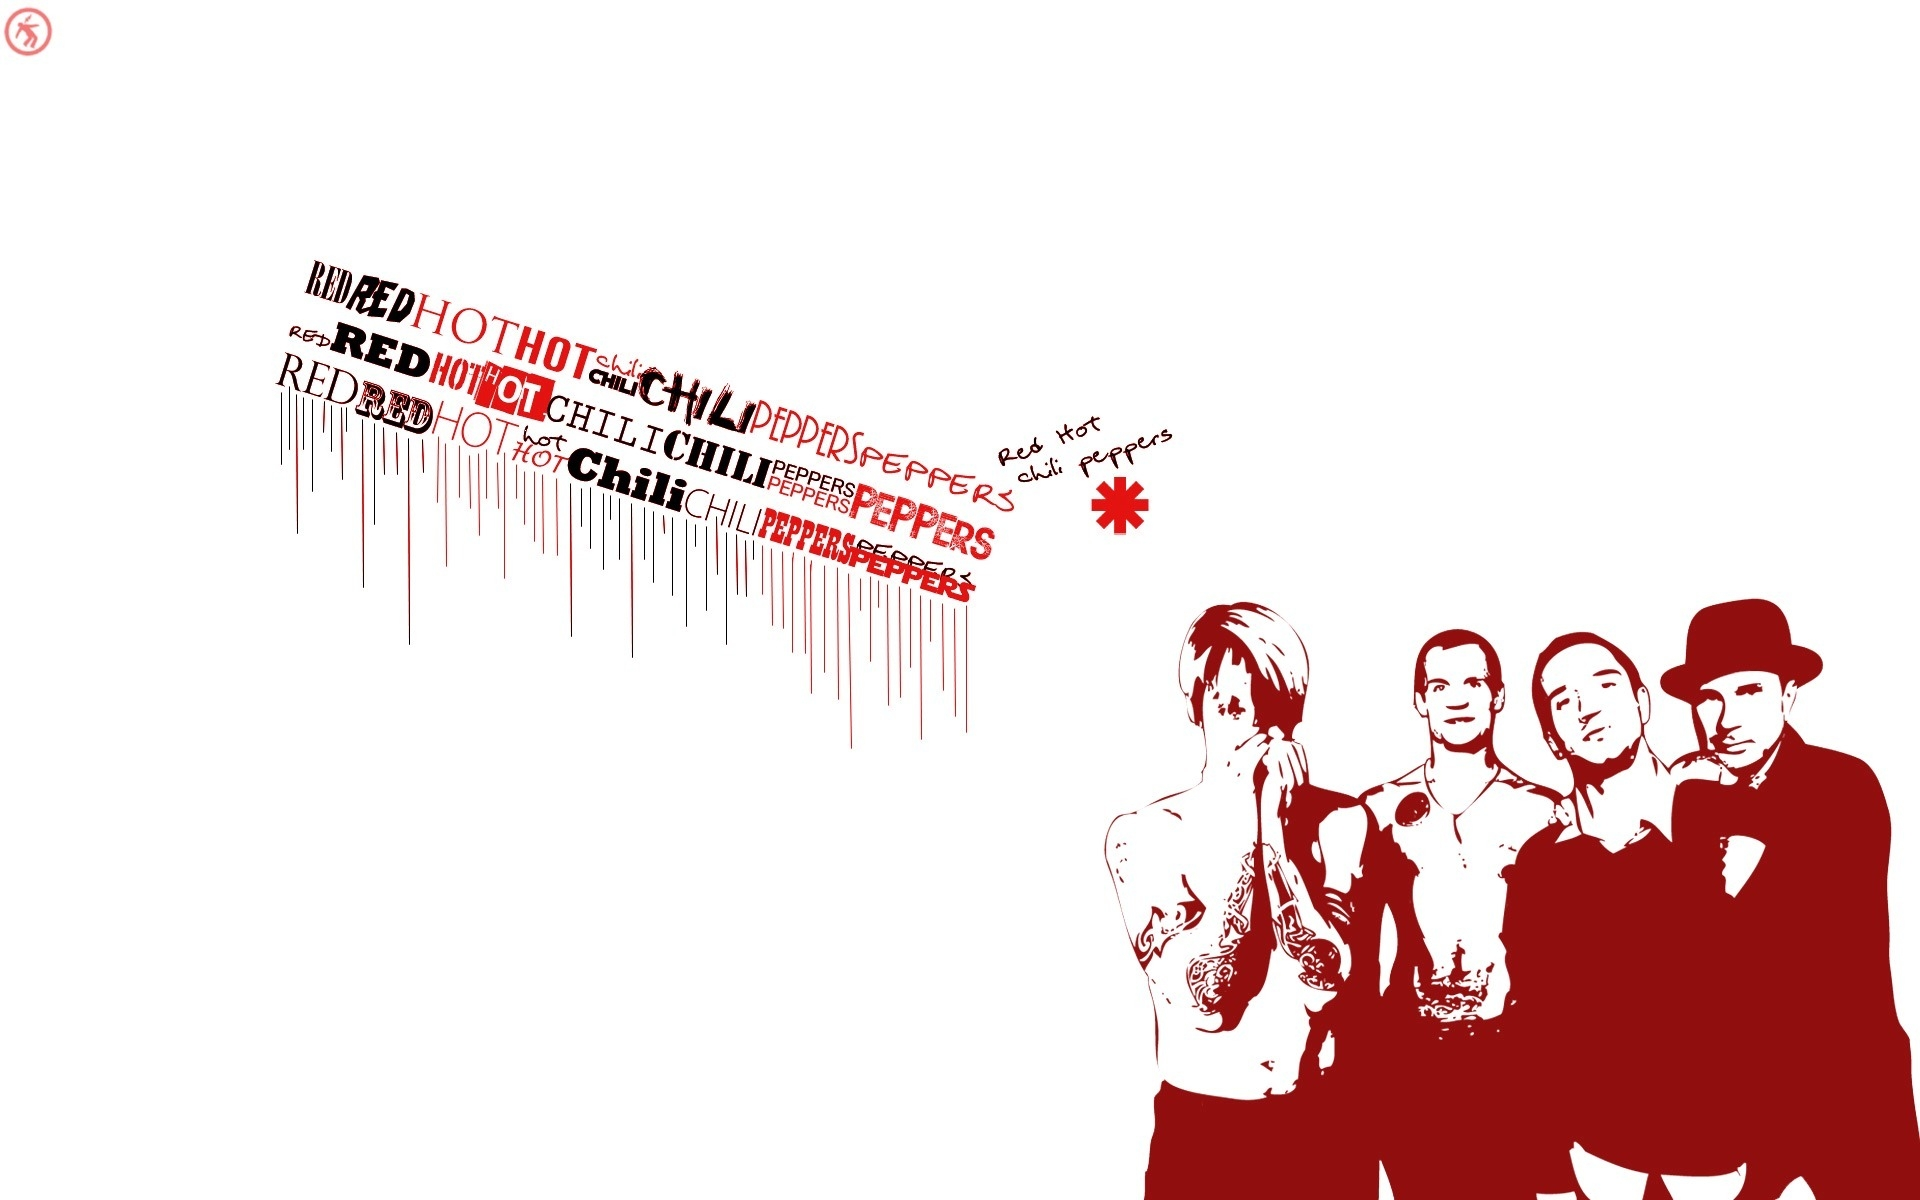 Red Hot Chili Peppers Poster Hd Wallpaper Wallpaperfx